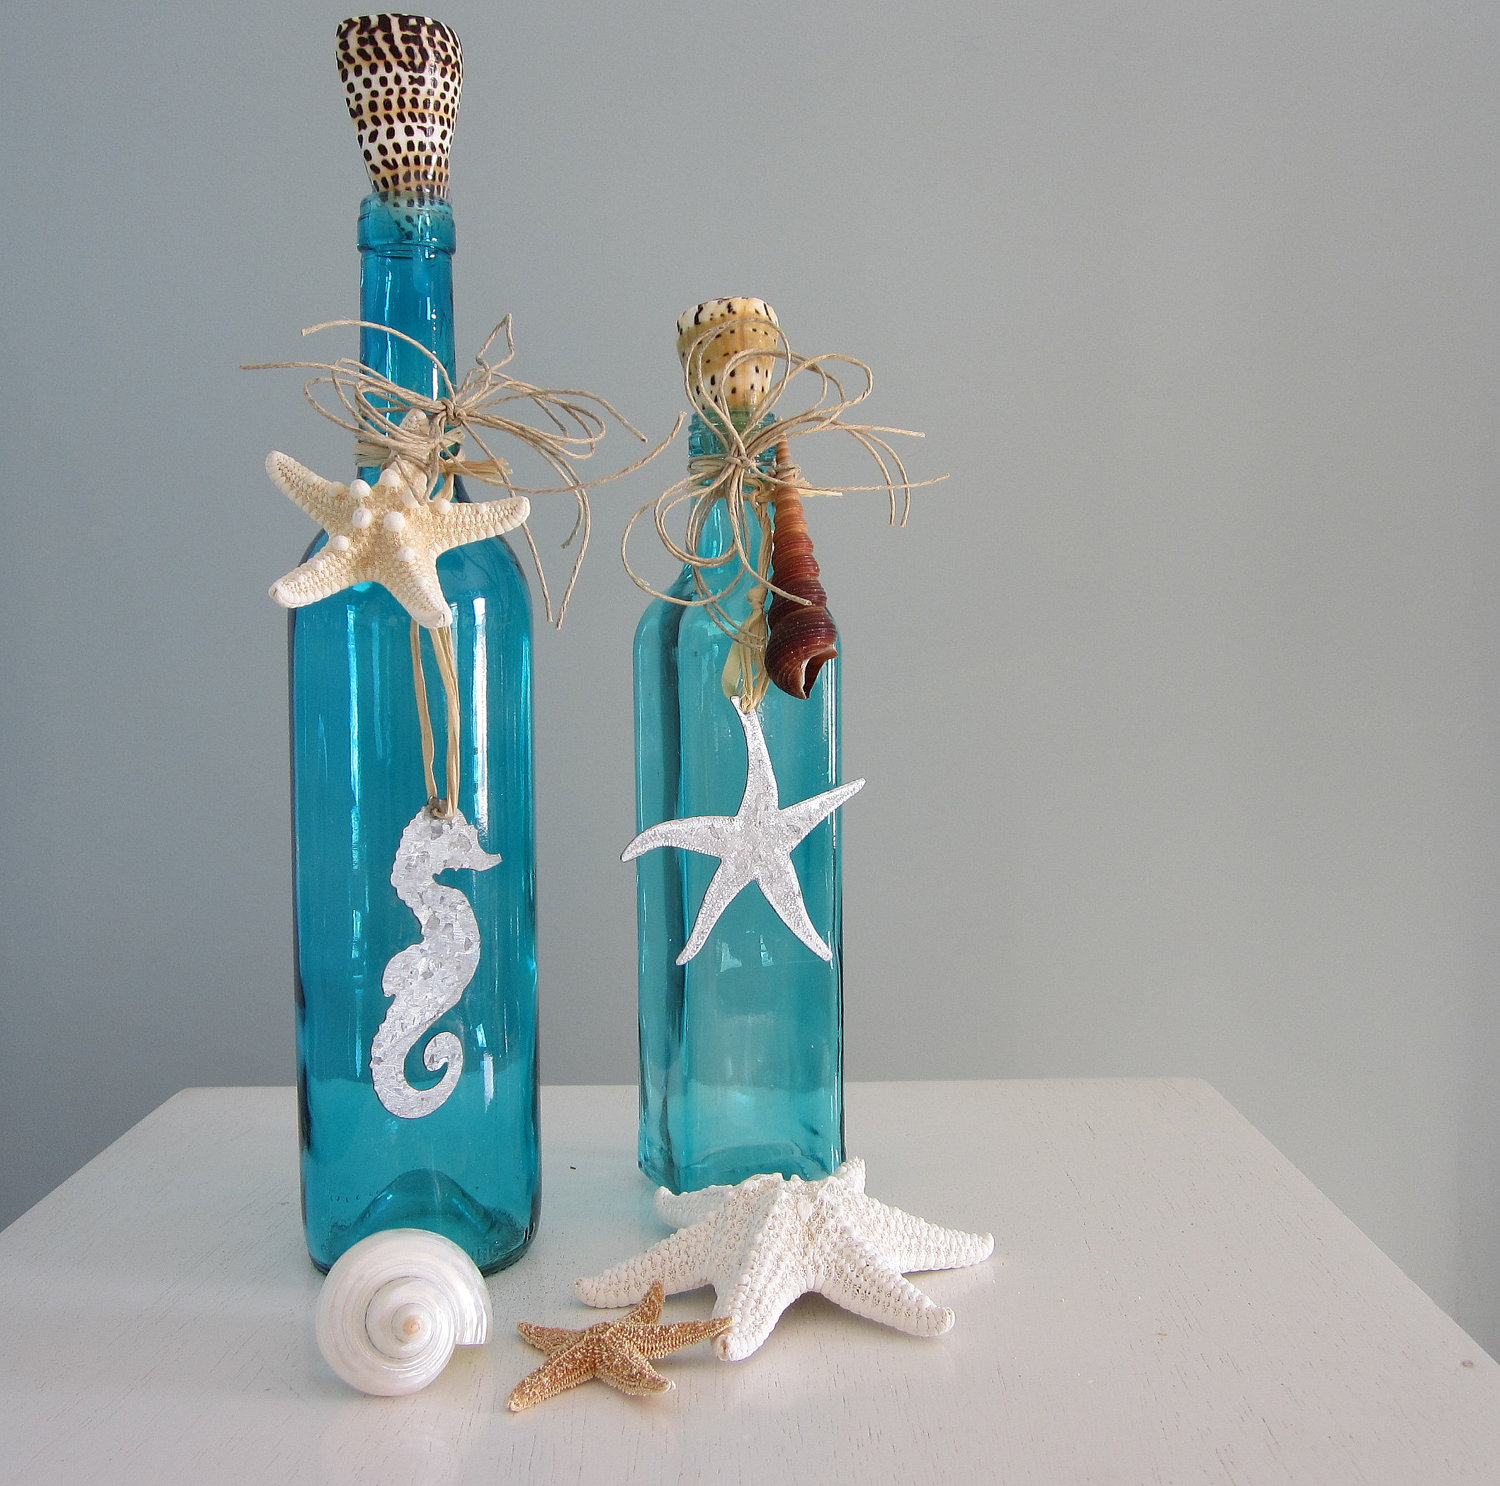 painted diy bottles decor glass decorating and recycling decorative decoration ideas